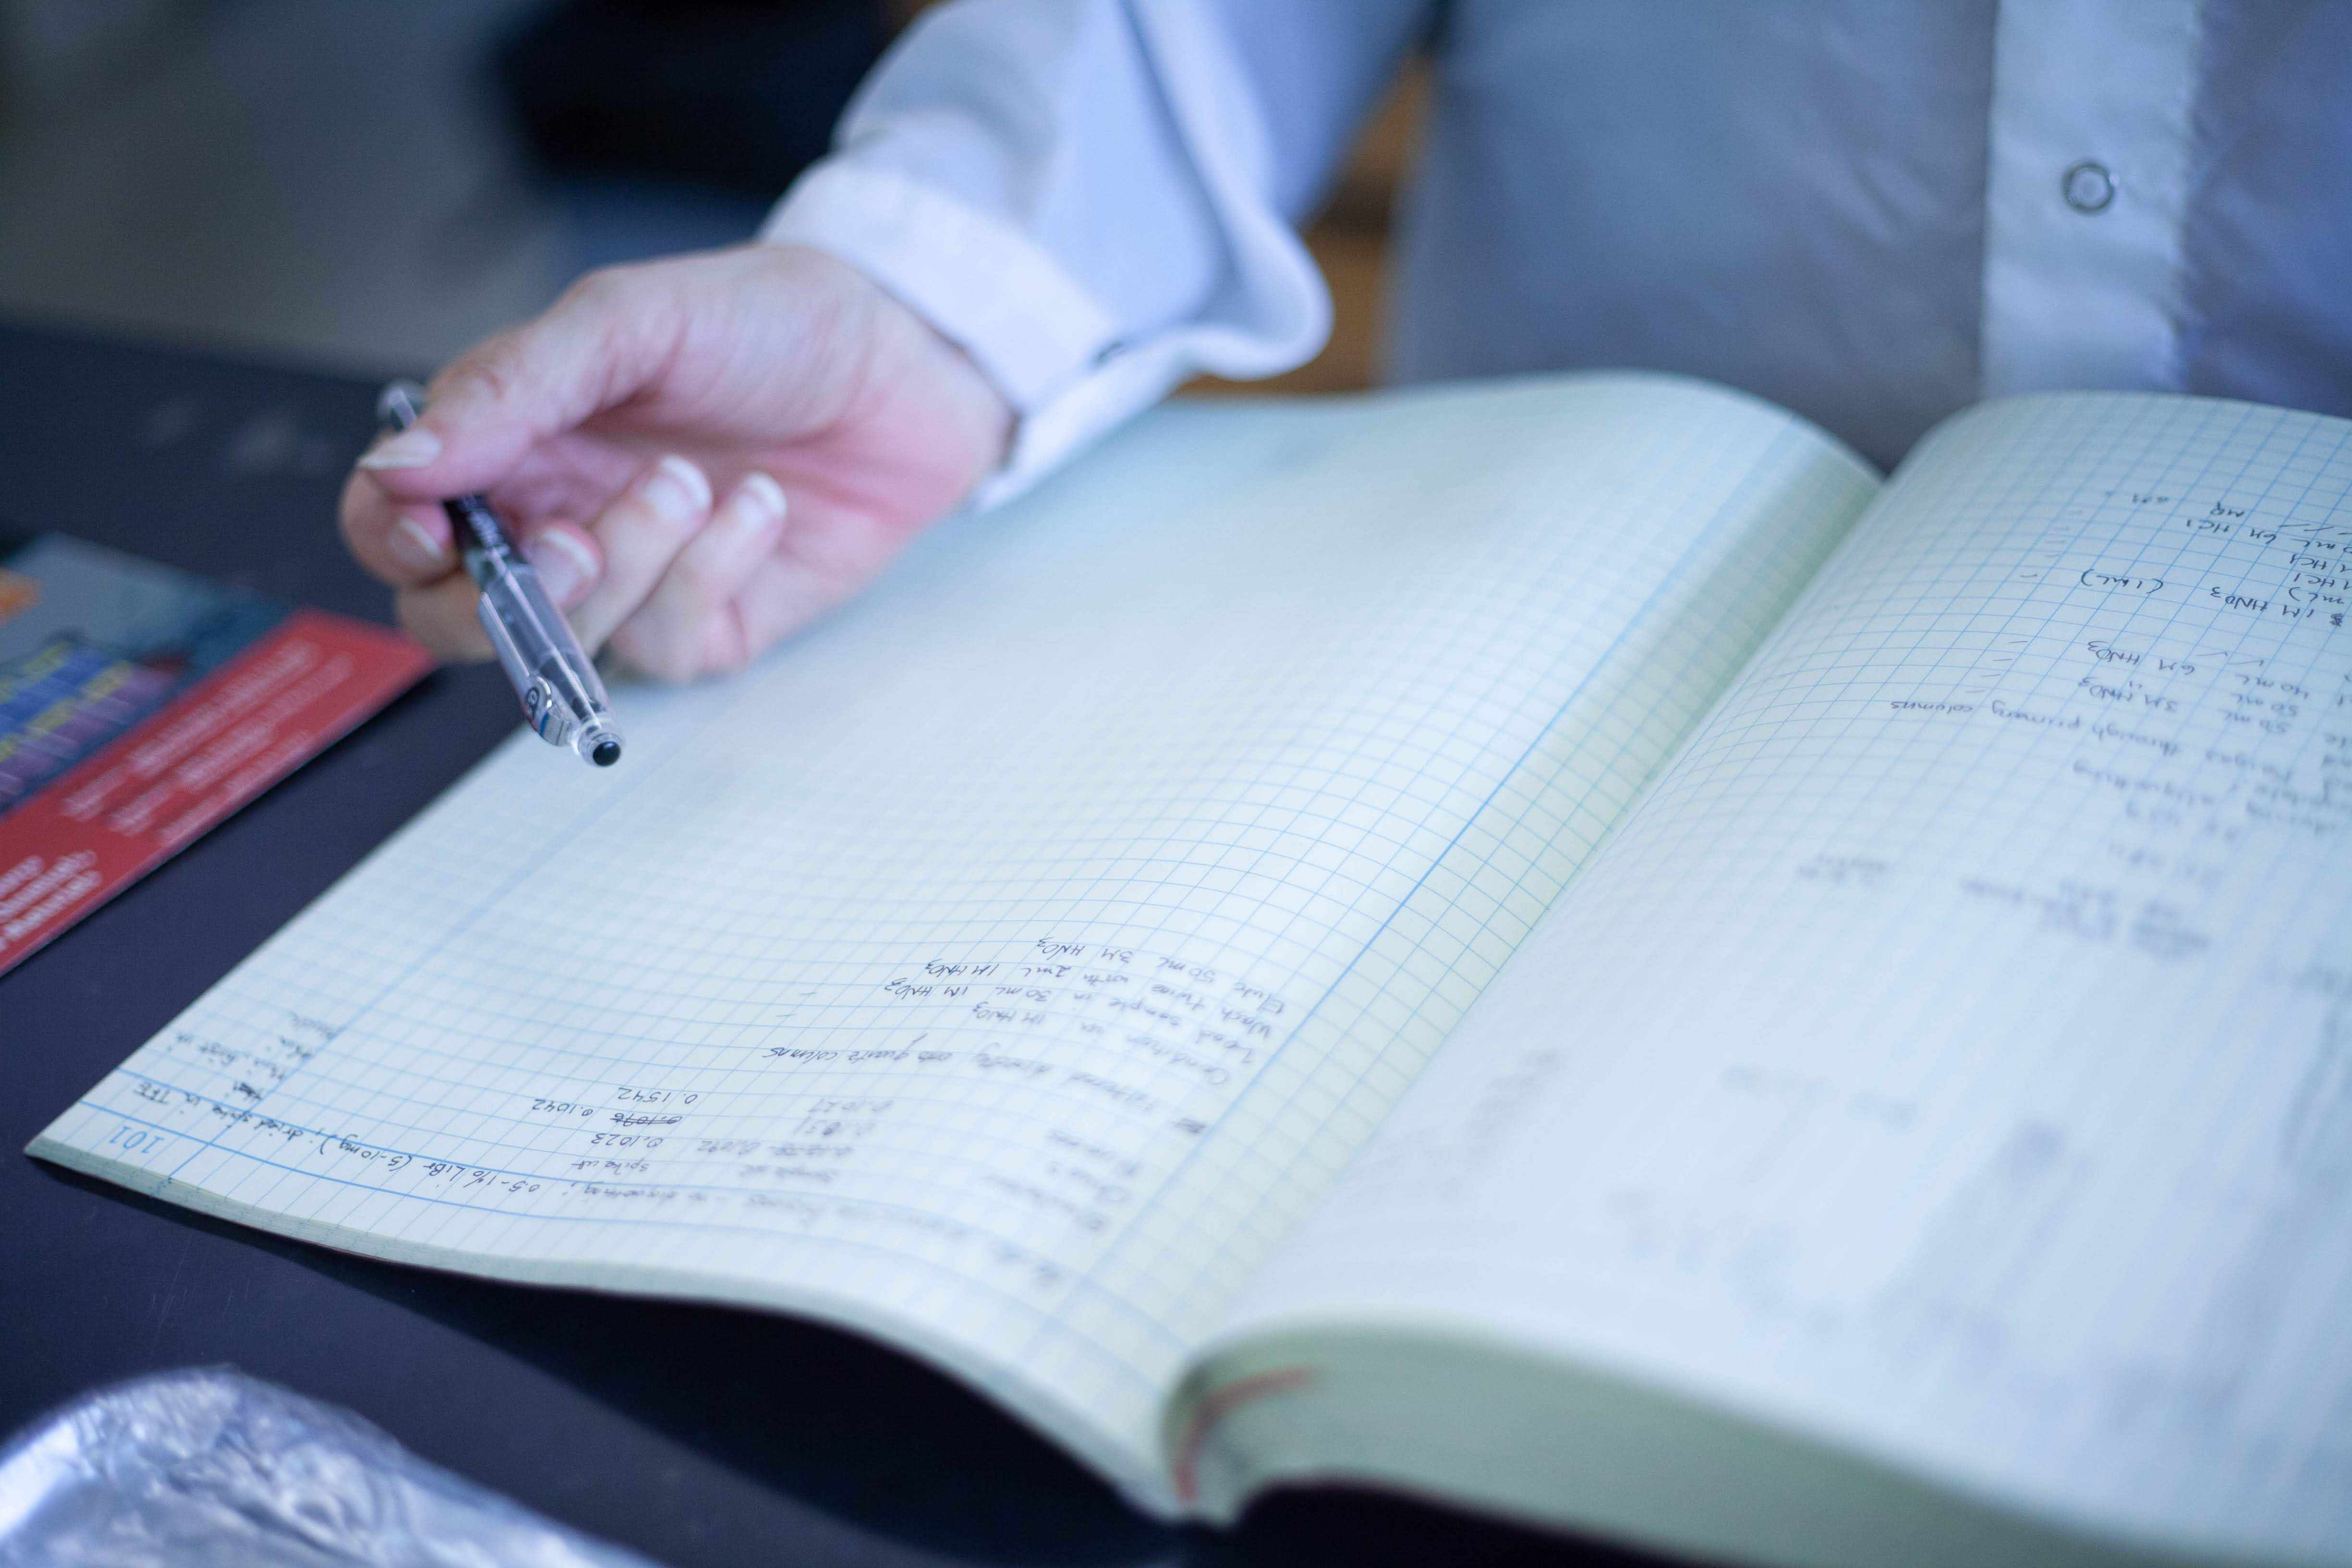 Mary Horan takes notes in her laboratory notebook